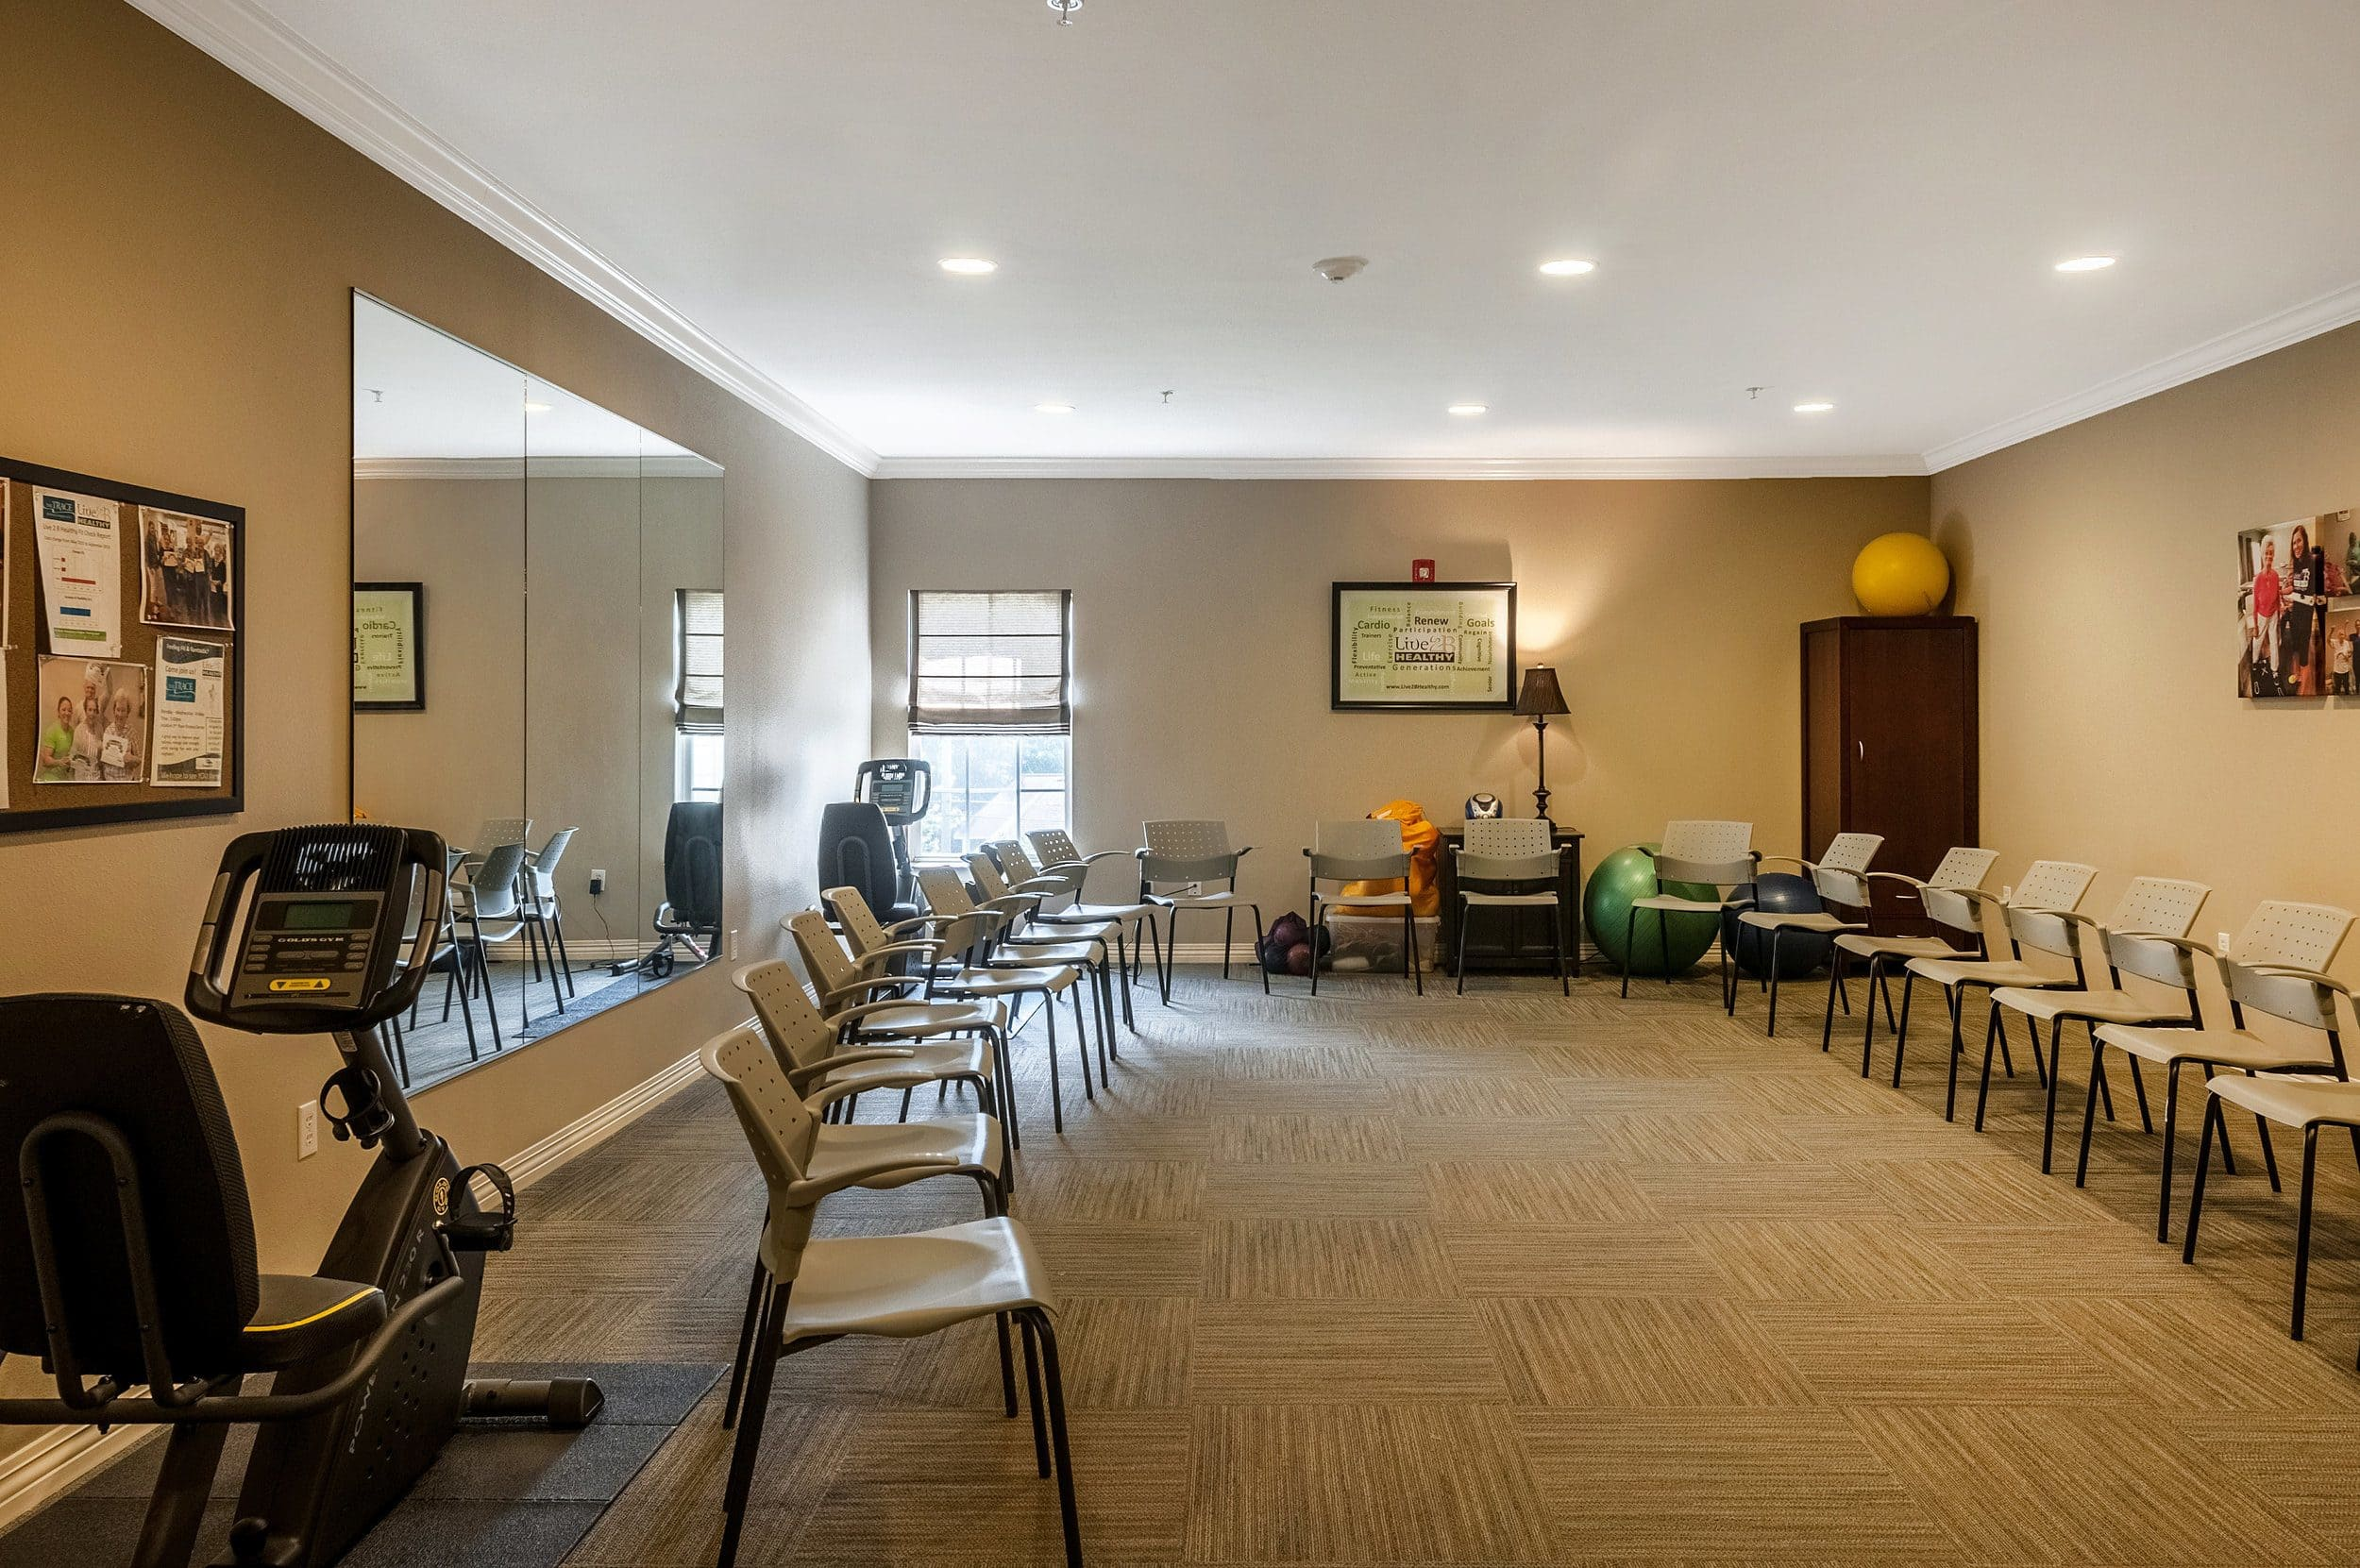 Fitness Center At Our Senior Living Home In Covington